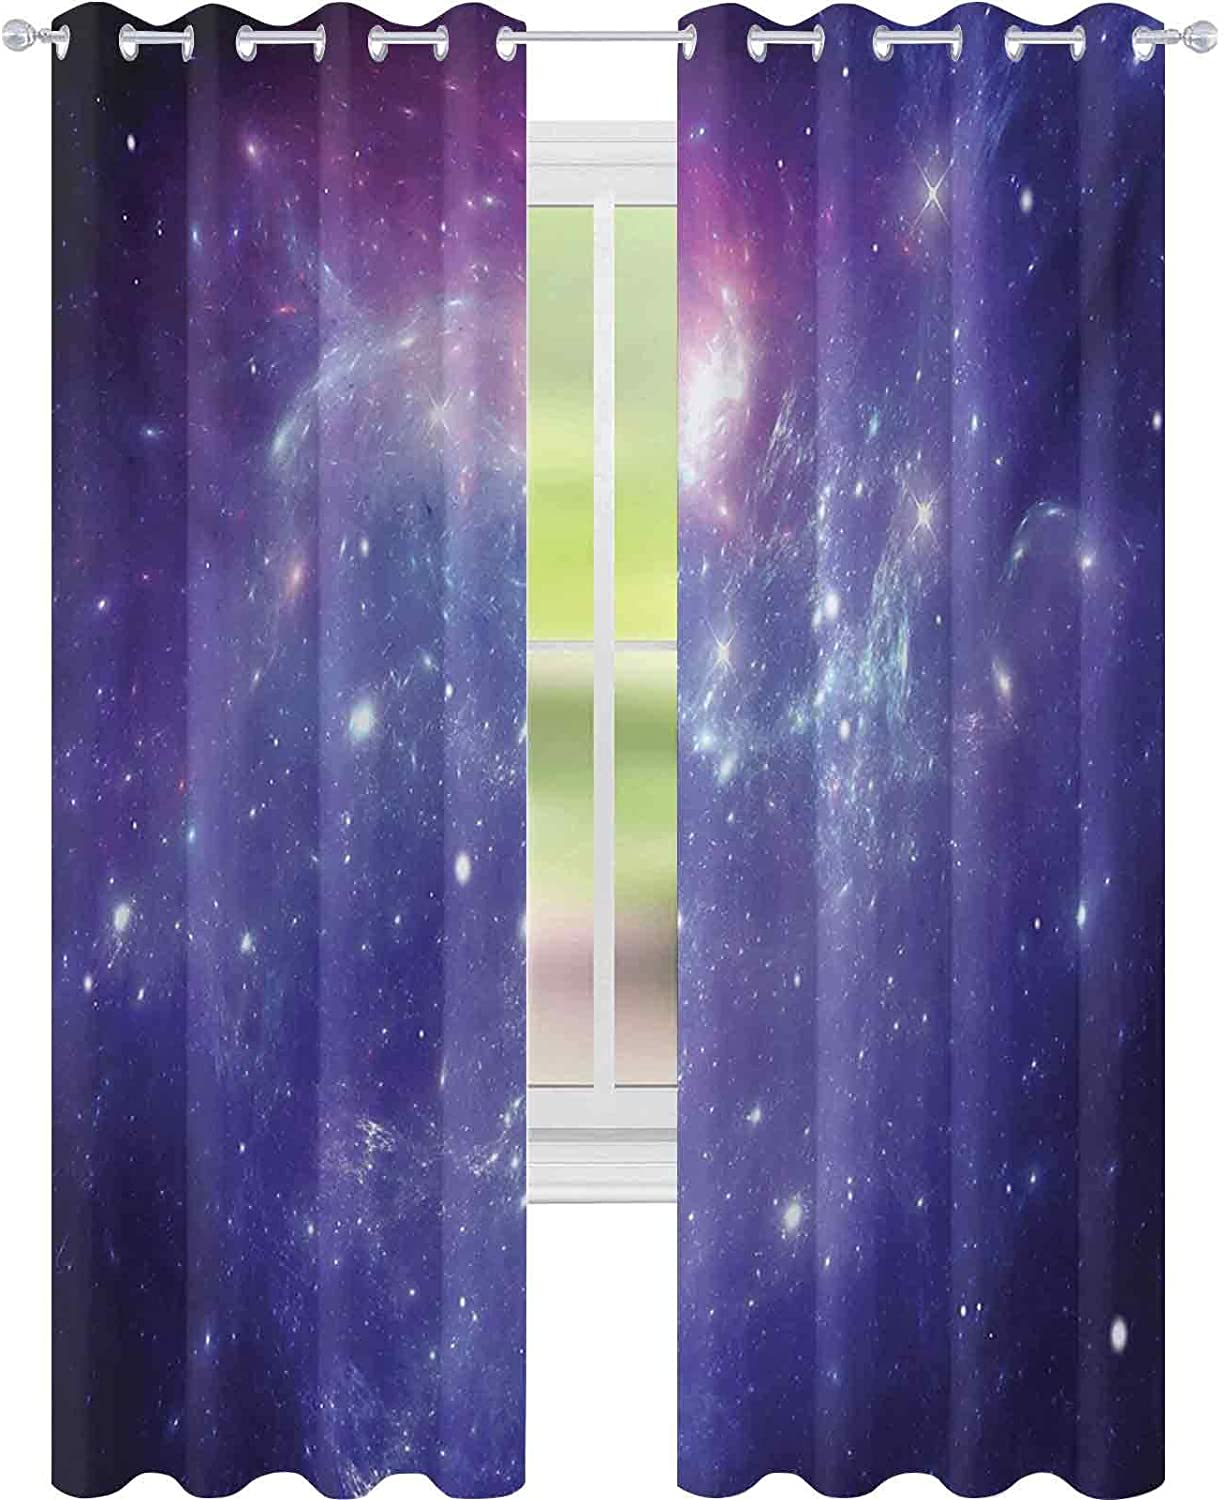 WINDOW CURTAINS NEBULA GAS CLOUD DUST SPIRAL EXPANSE PLANET GALAXY SYSTEM MILKY WAY INSPIRED W52 X L63 CURTAINS FOR BABY NURSERY ROOM NAVY PURPLE